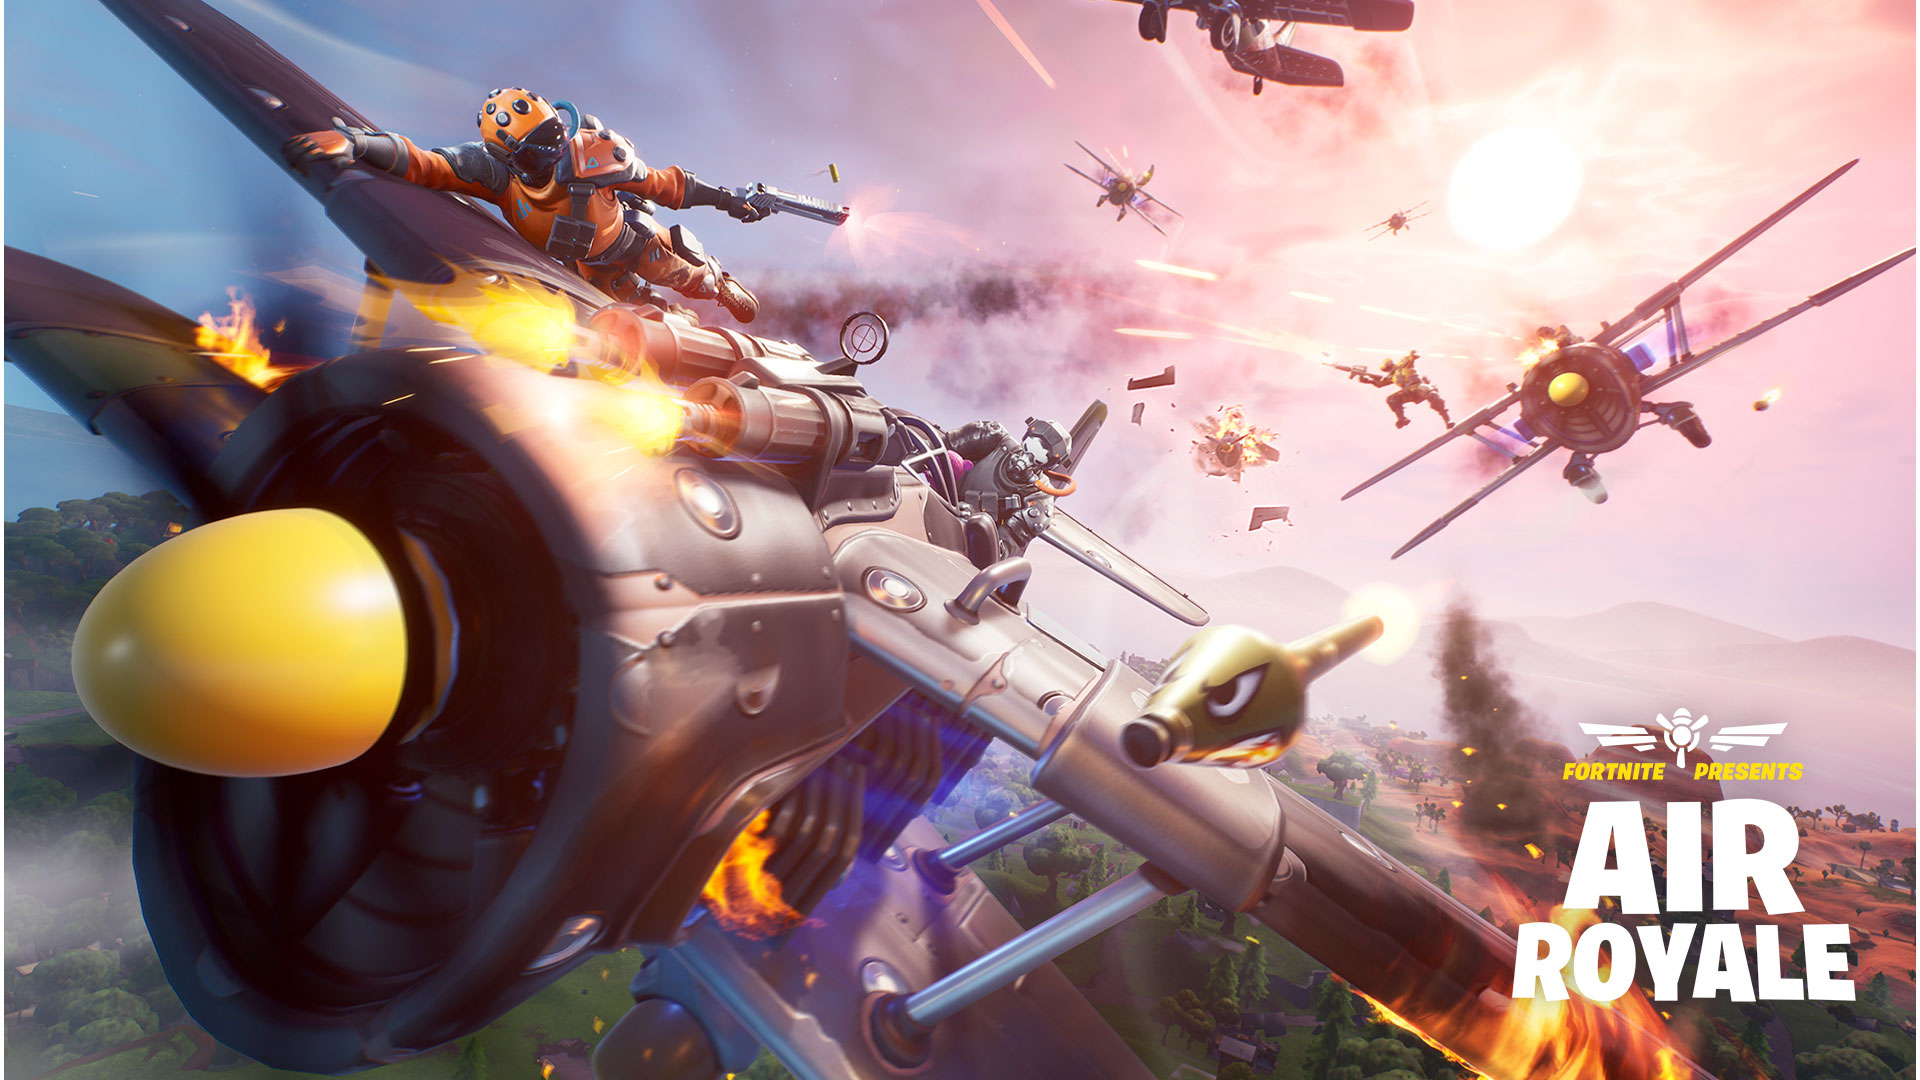 Protect the skies & more in Fortnite's latest update w/ Air Royale, food fighting, & new pet interactions